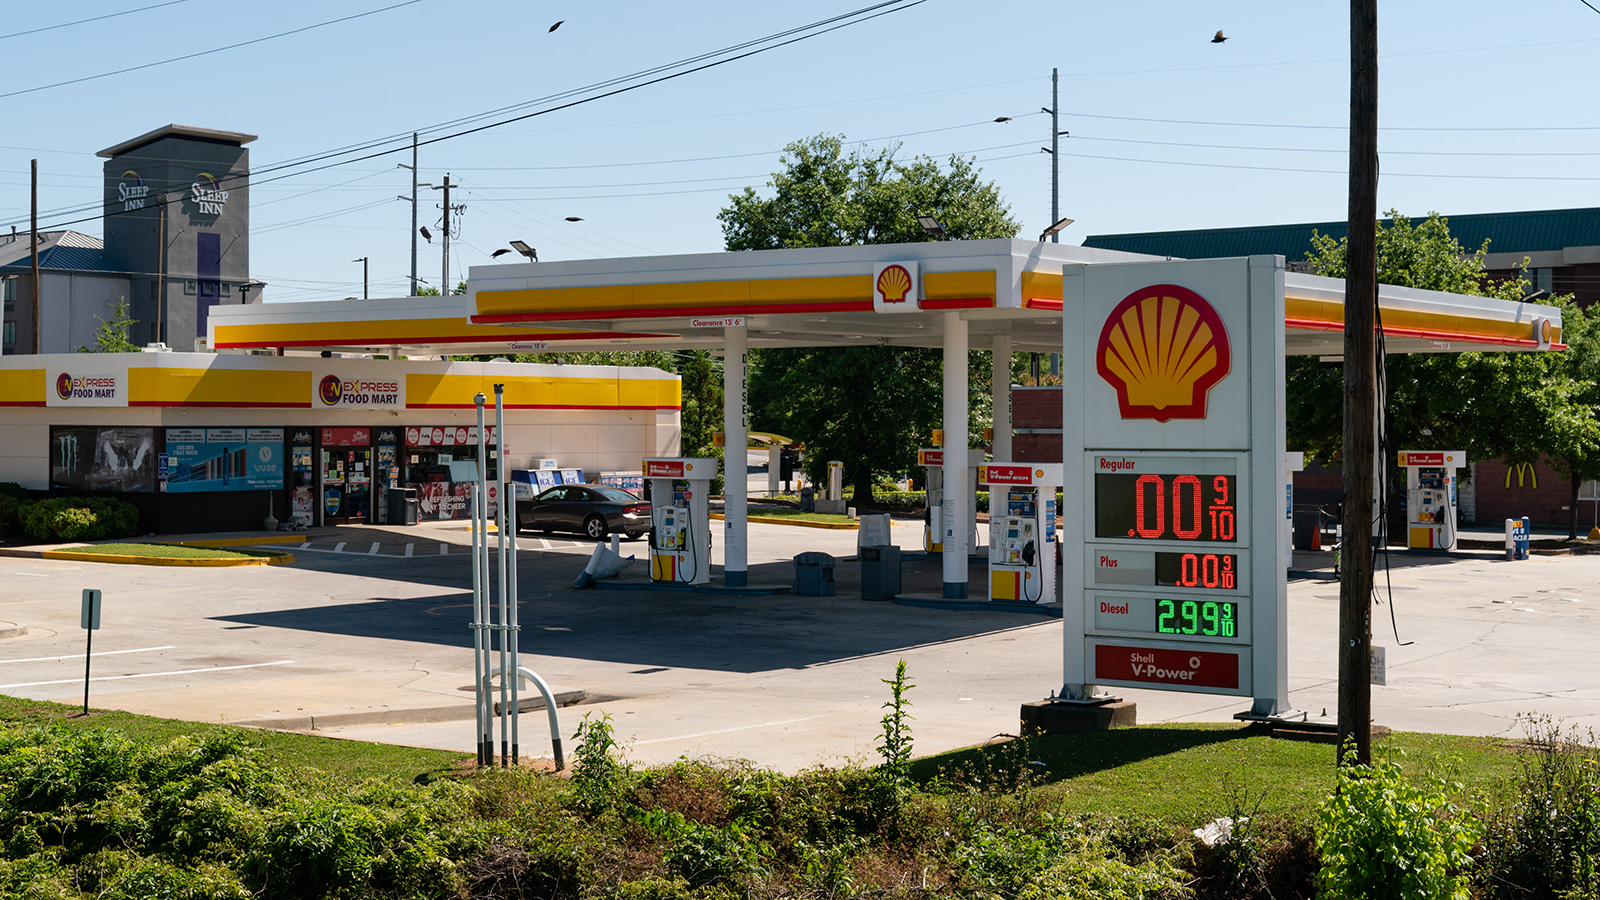 A Royal Dutch Shell gas station displays a price of $0, indicating the station is out of gas, in Marietta, Georgia, on Thursday, May 13.